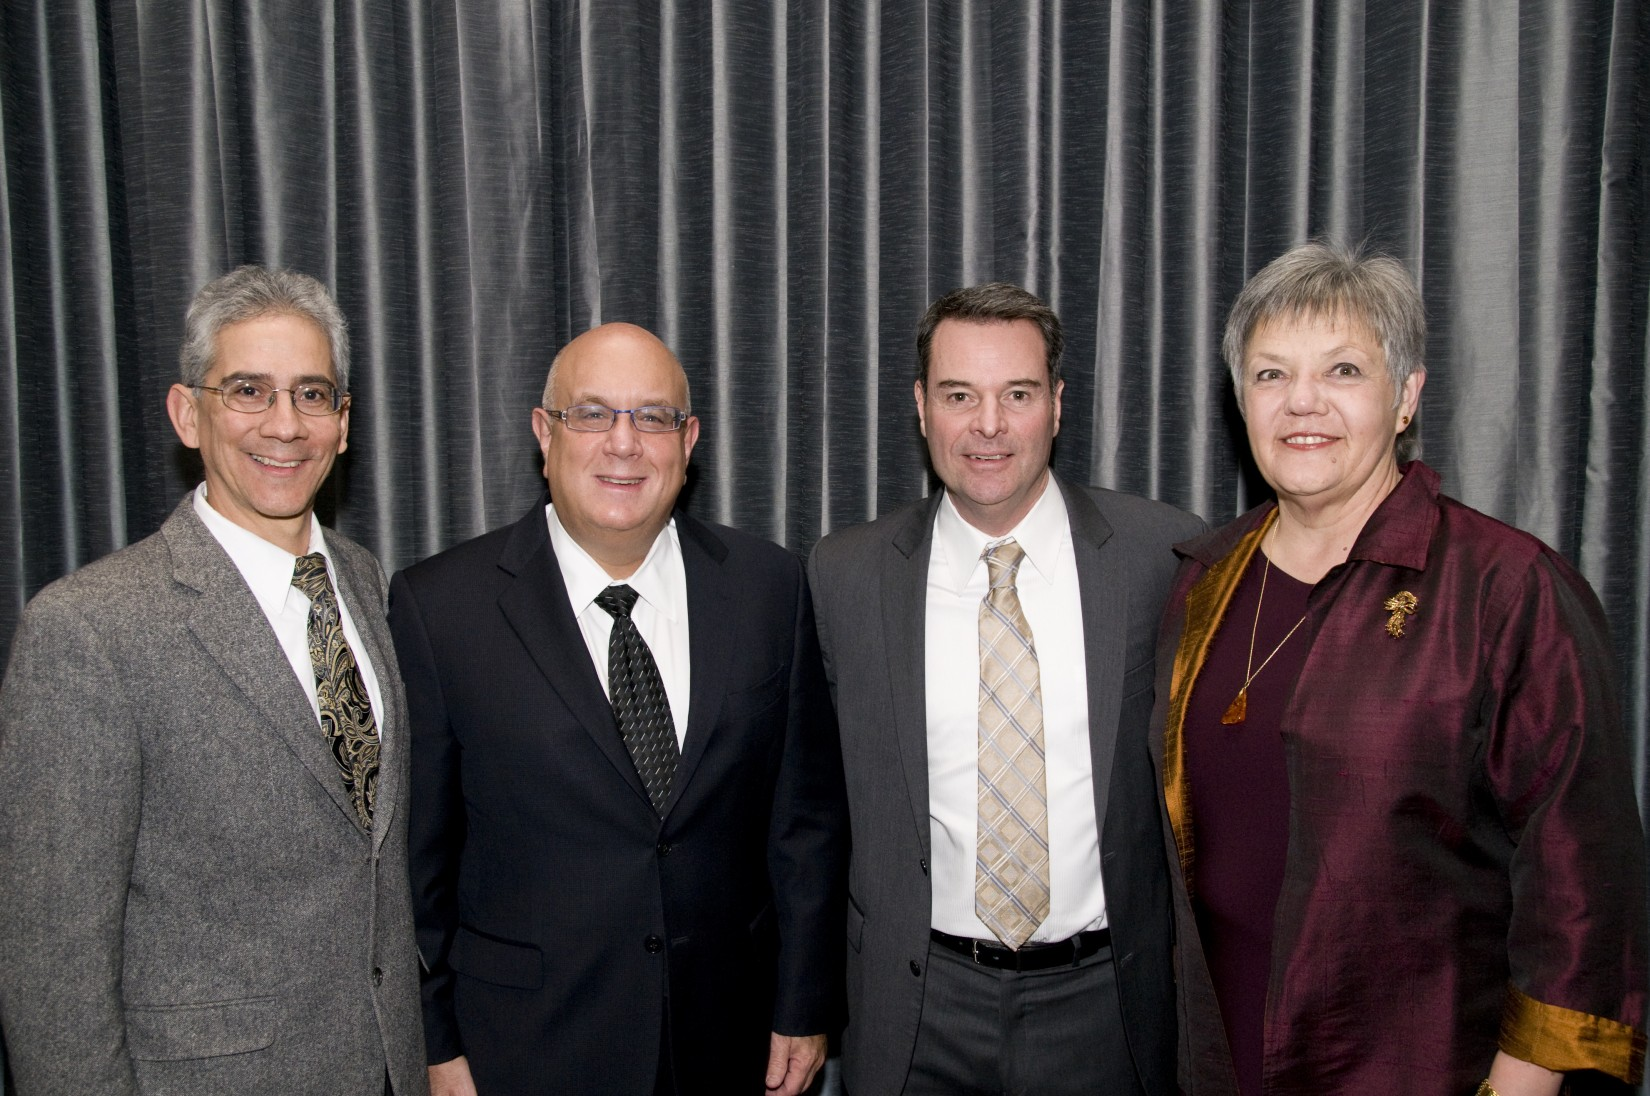 The Hon. Marco Hernandez, the Hon. Michael H. Simon, the Hon. Michael McShane '88, and the Hon. Anna Brown '80.